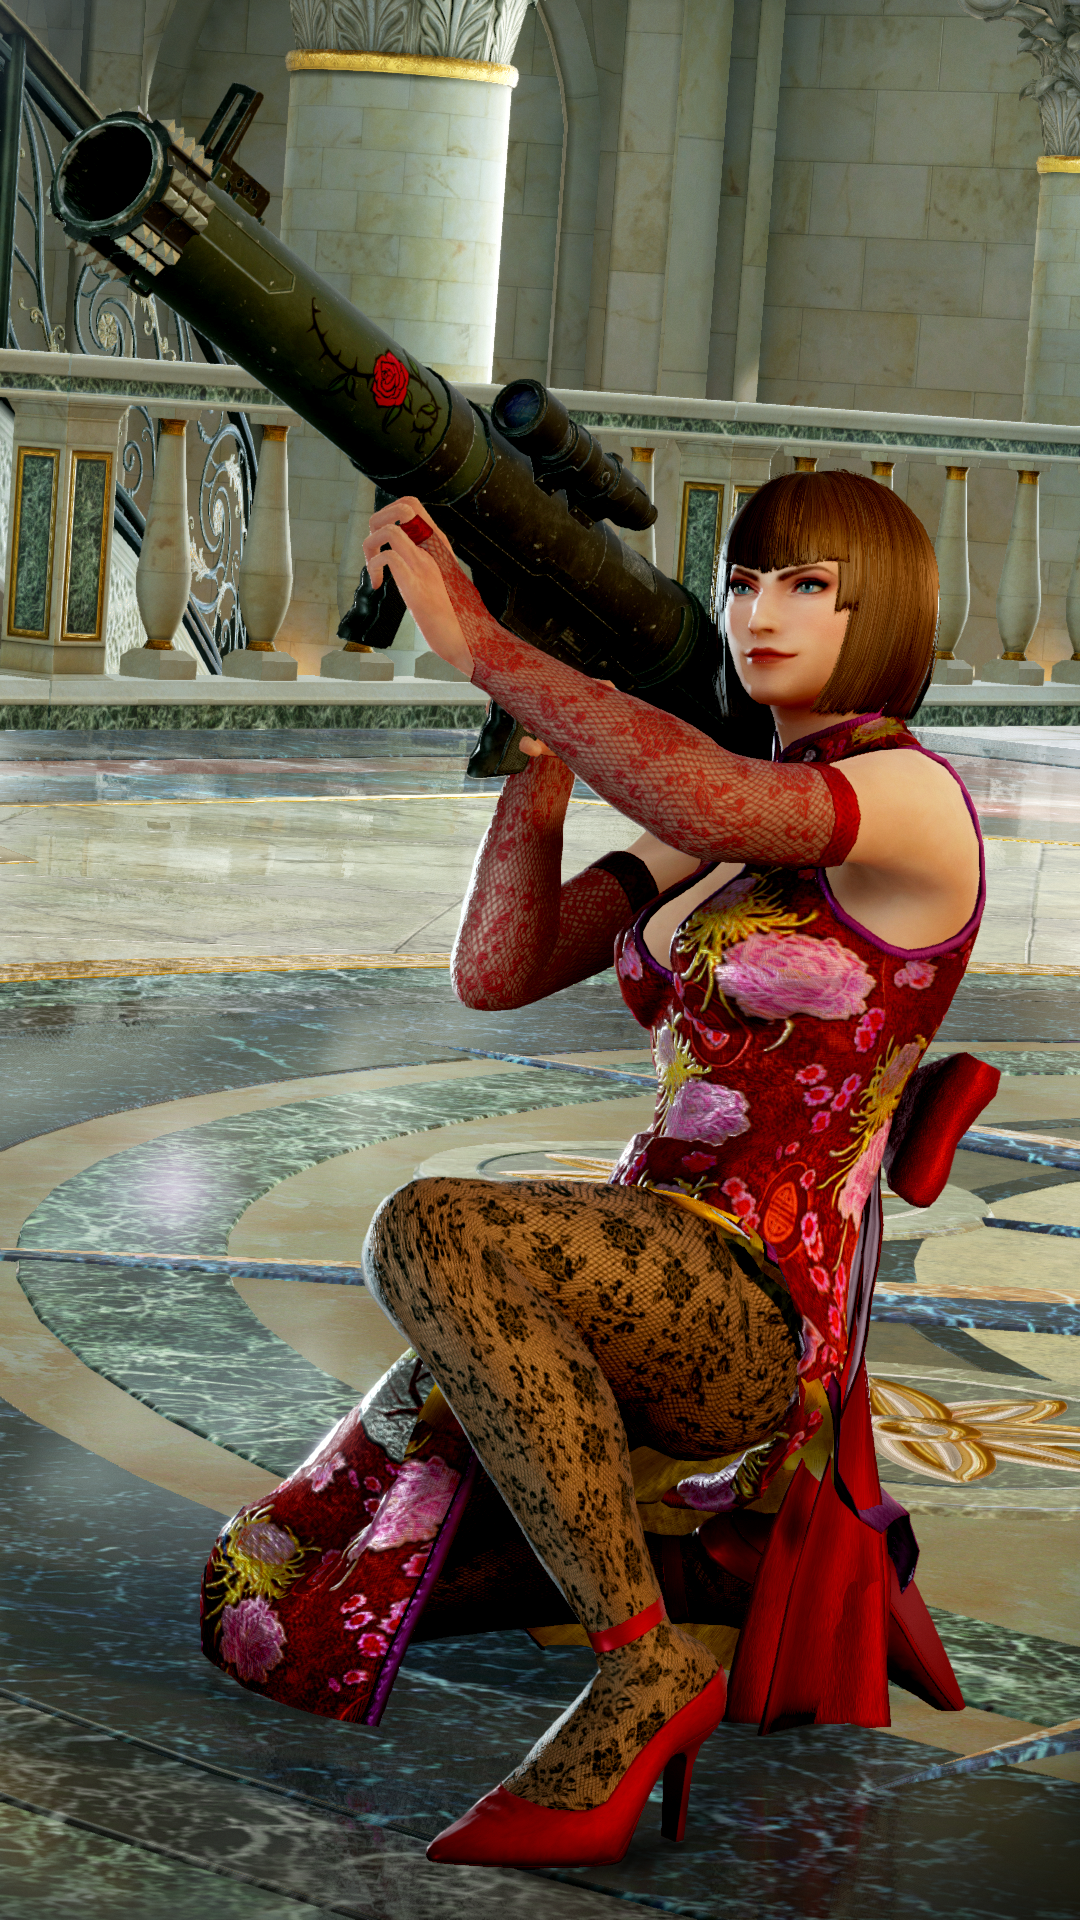 anna williams & lei wulong show off their unique costumes in tekken